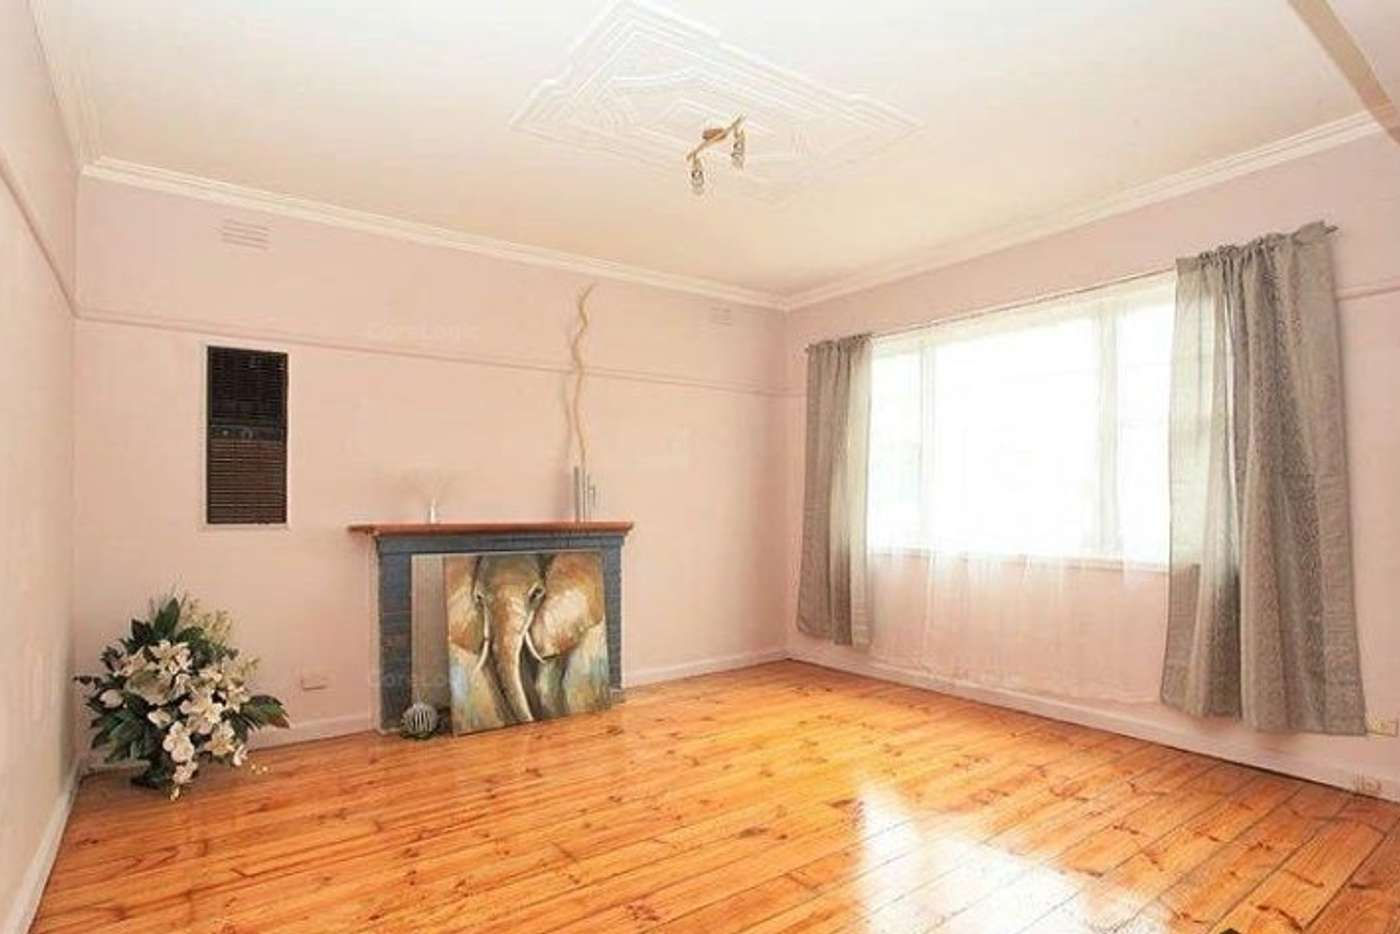 Main view of Homely house listing, 8 Baynton Avenue, Sunshine North VIC 3020